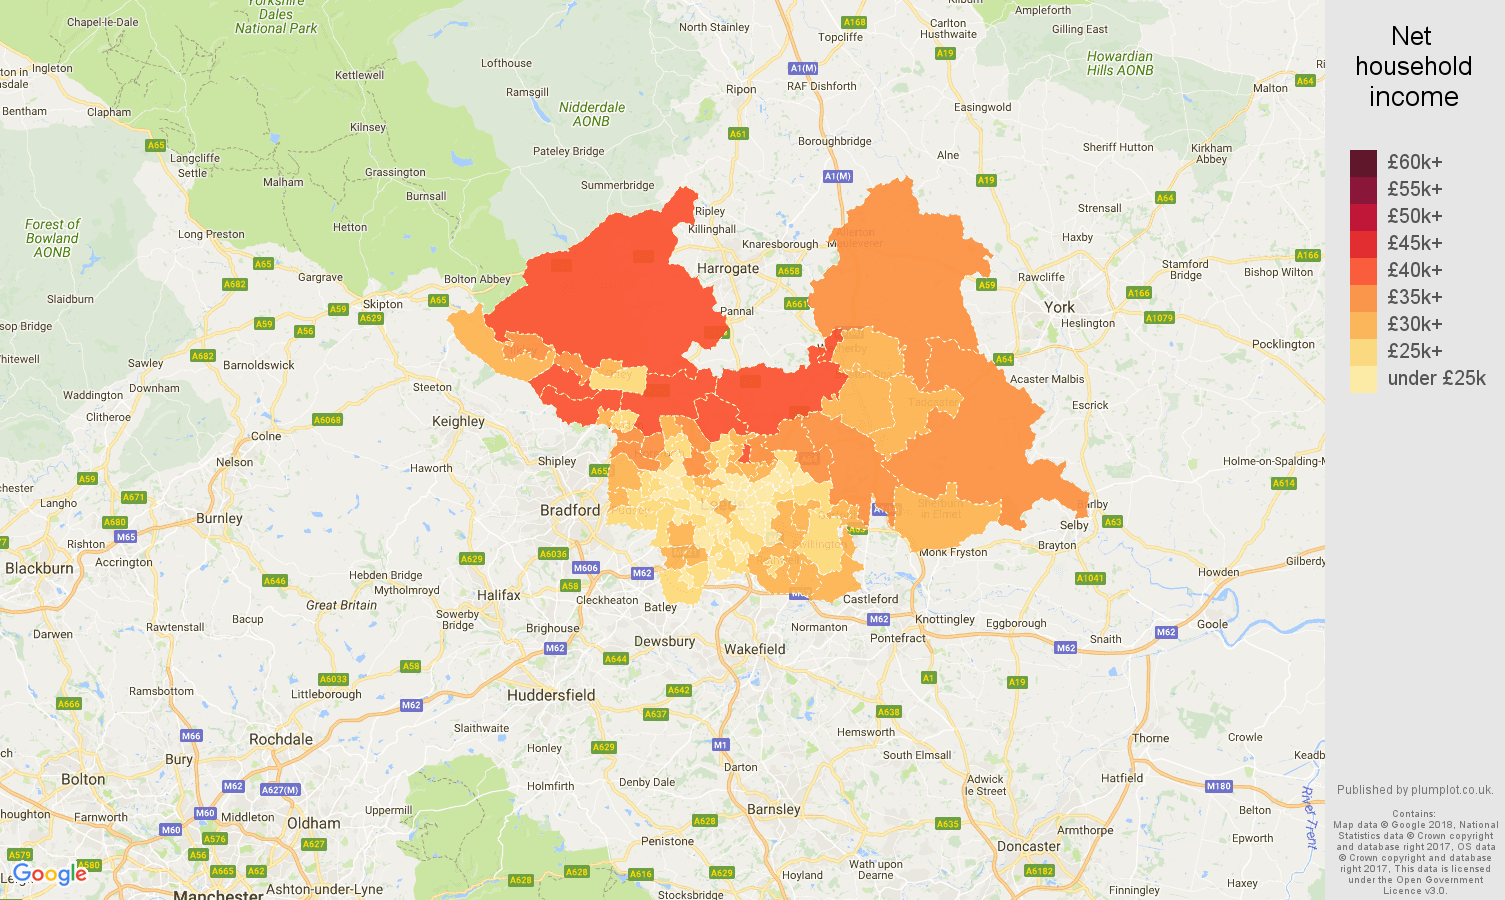 Leeds net household income map